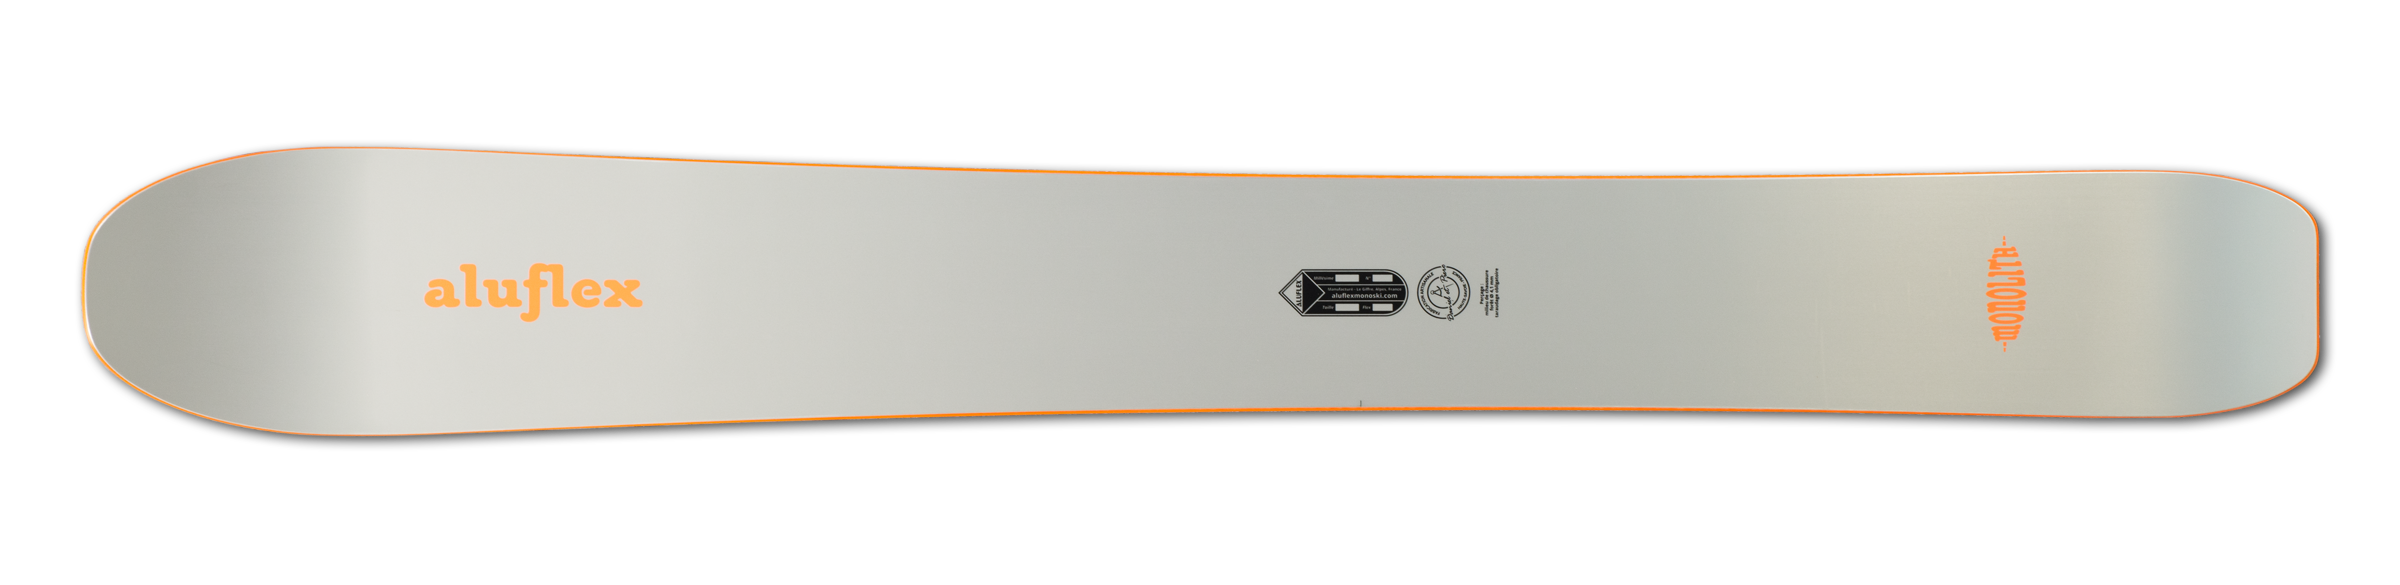 Monoski Aluflex Monolith orange